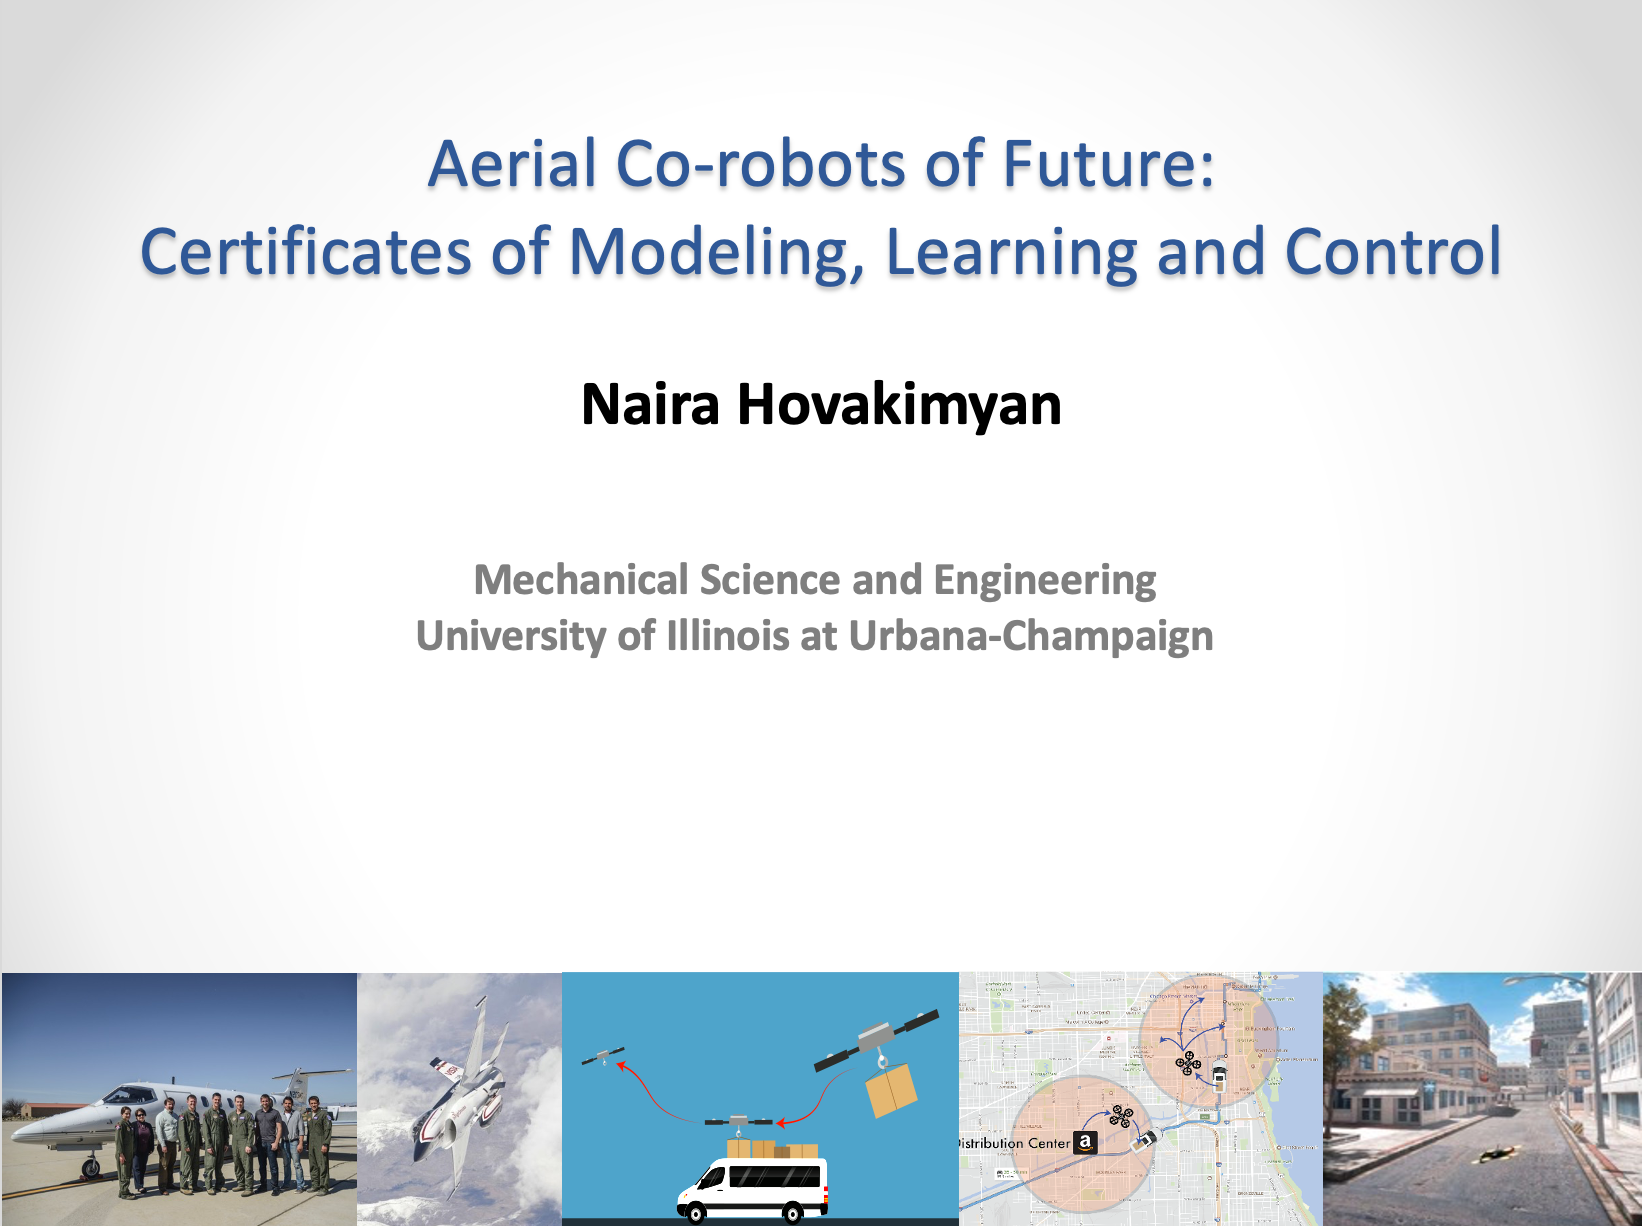 [Slides] Aerial Co-robots of Future: Certificates of Modeling, Learning and Control – IEEE CCTA workshop